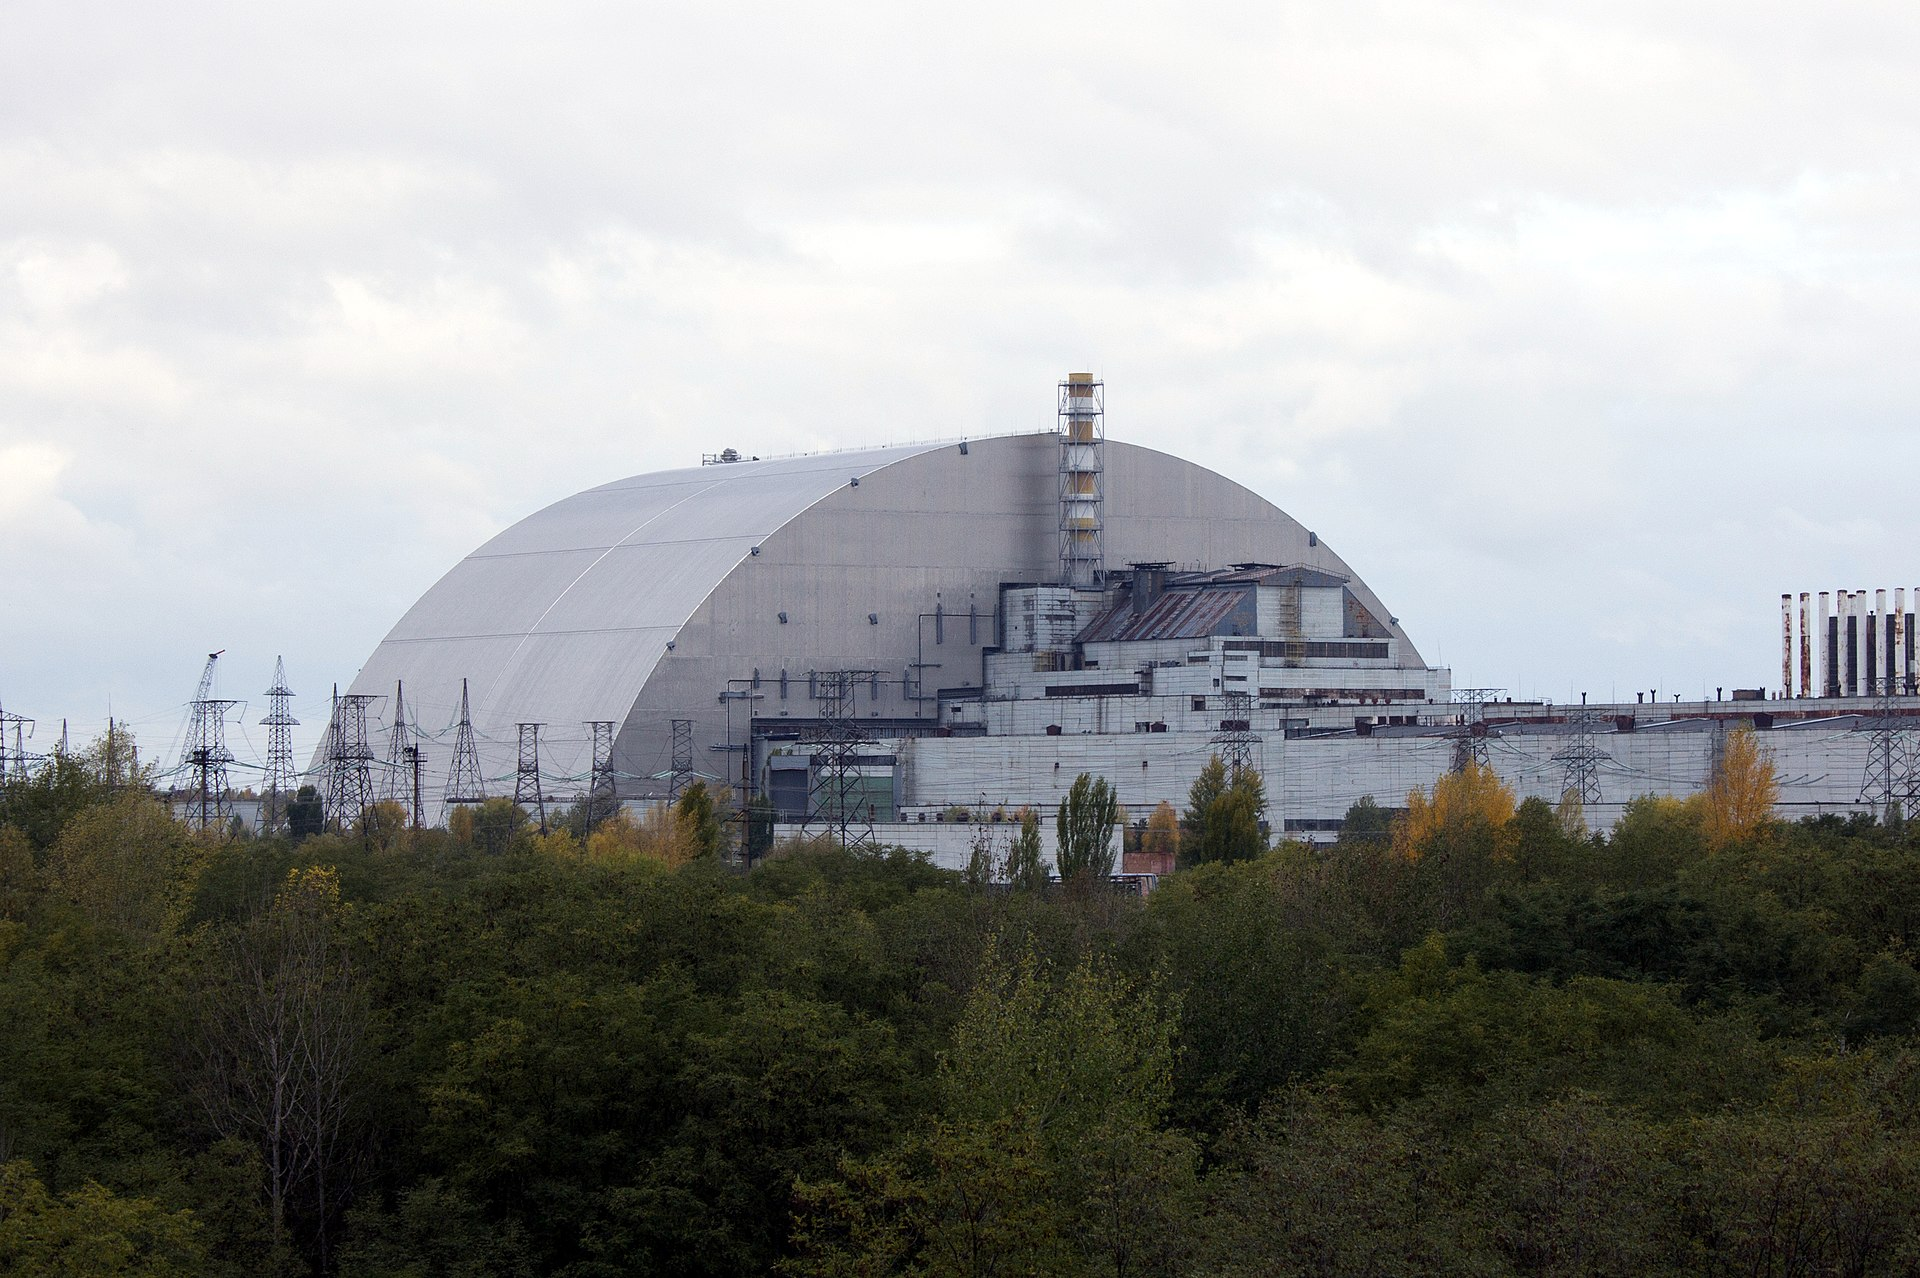 New Safe Confinement in October 2017